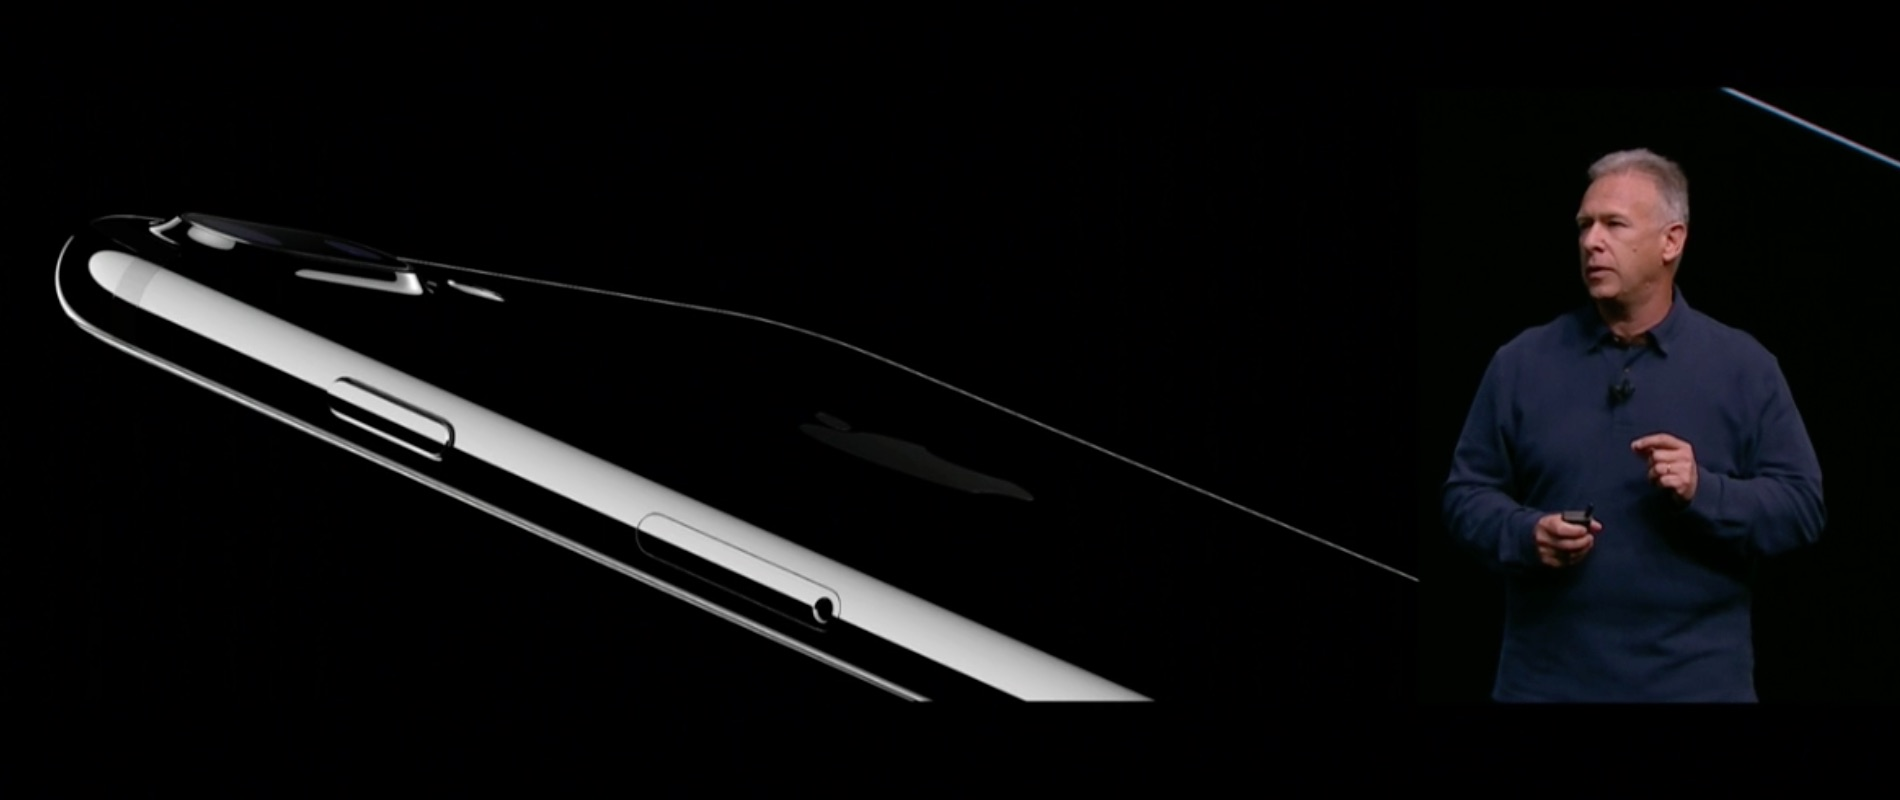 iphone7-plus-special-events-2016-sep-03